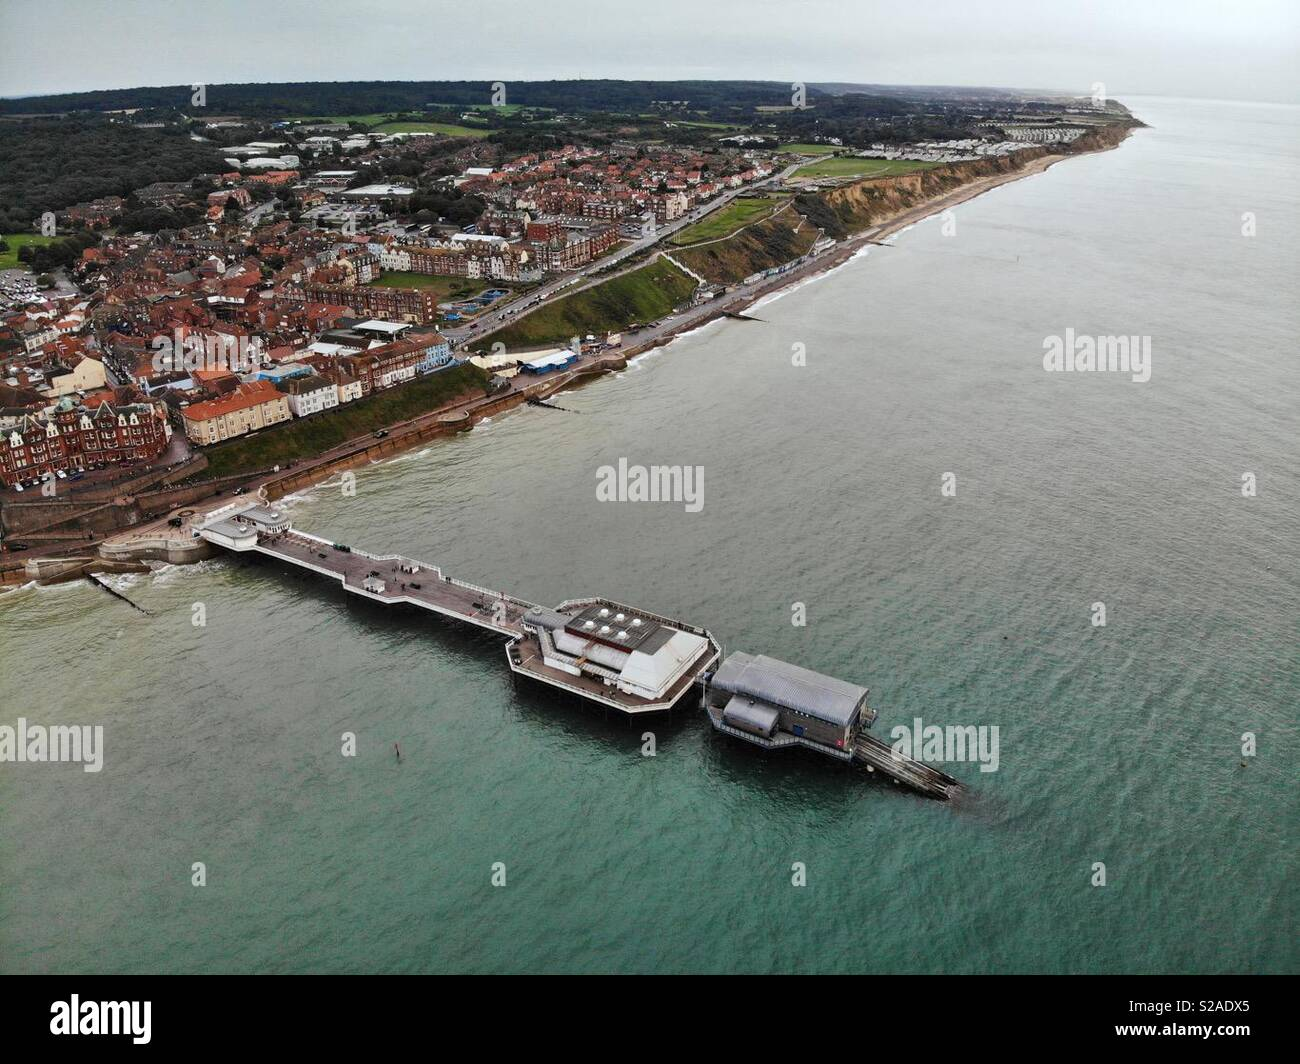 Aerial shot of Cromer pier from out to sea looking towards the town at dusk. - Stock Image